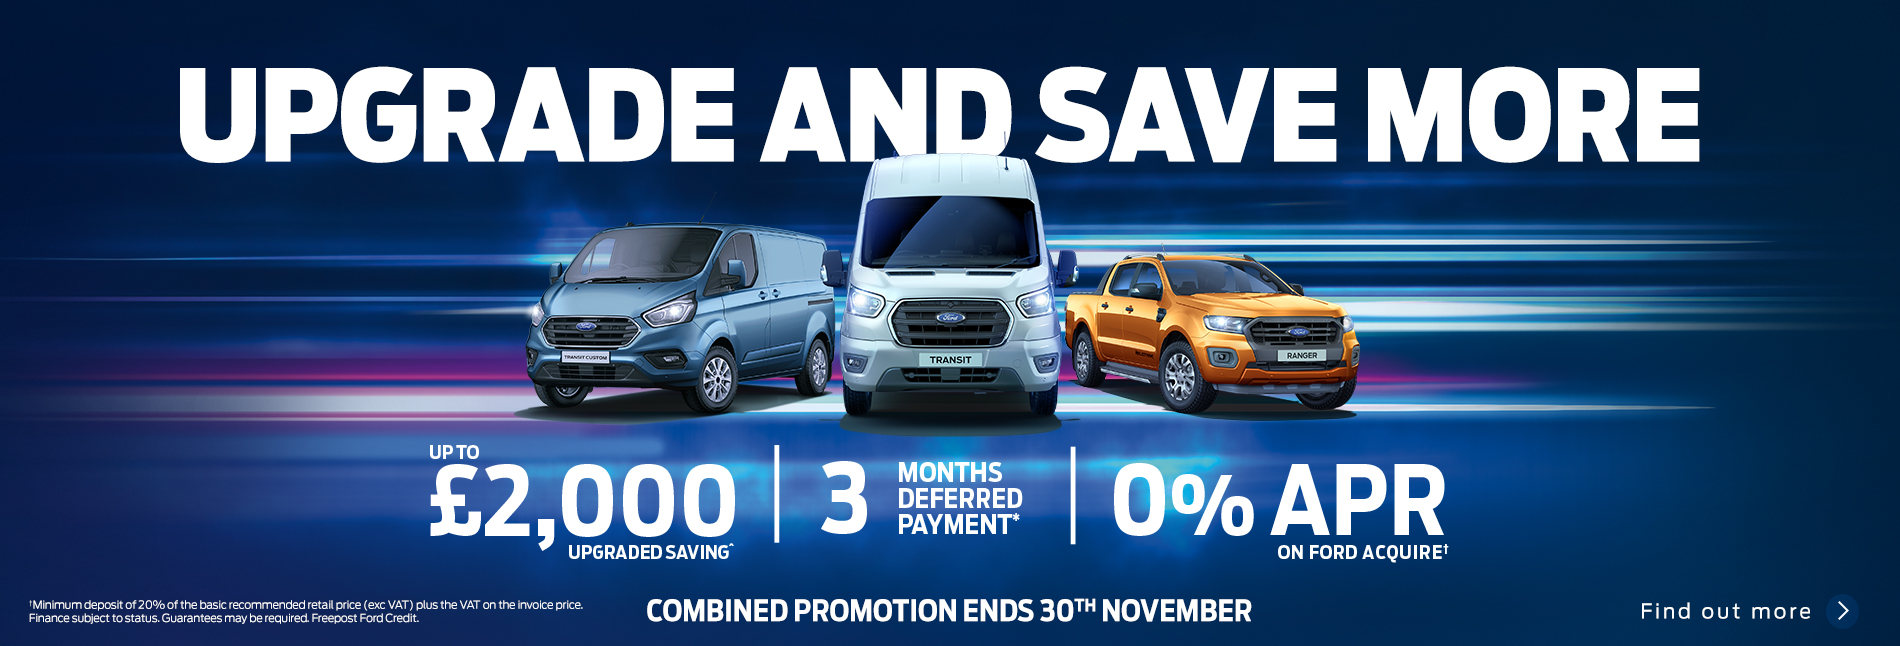 Ford Upgrade & Save More Event November 2020